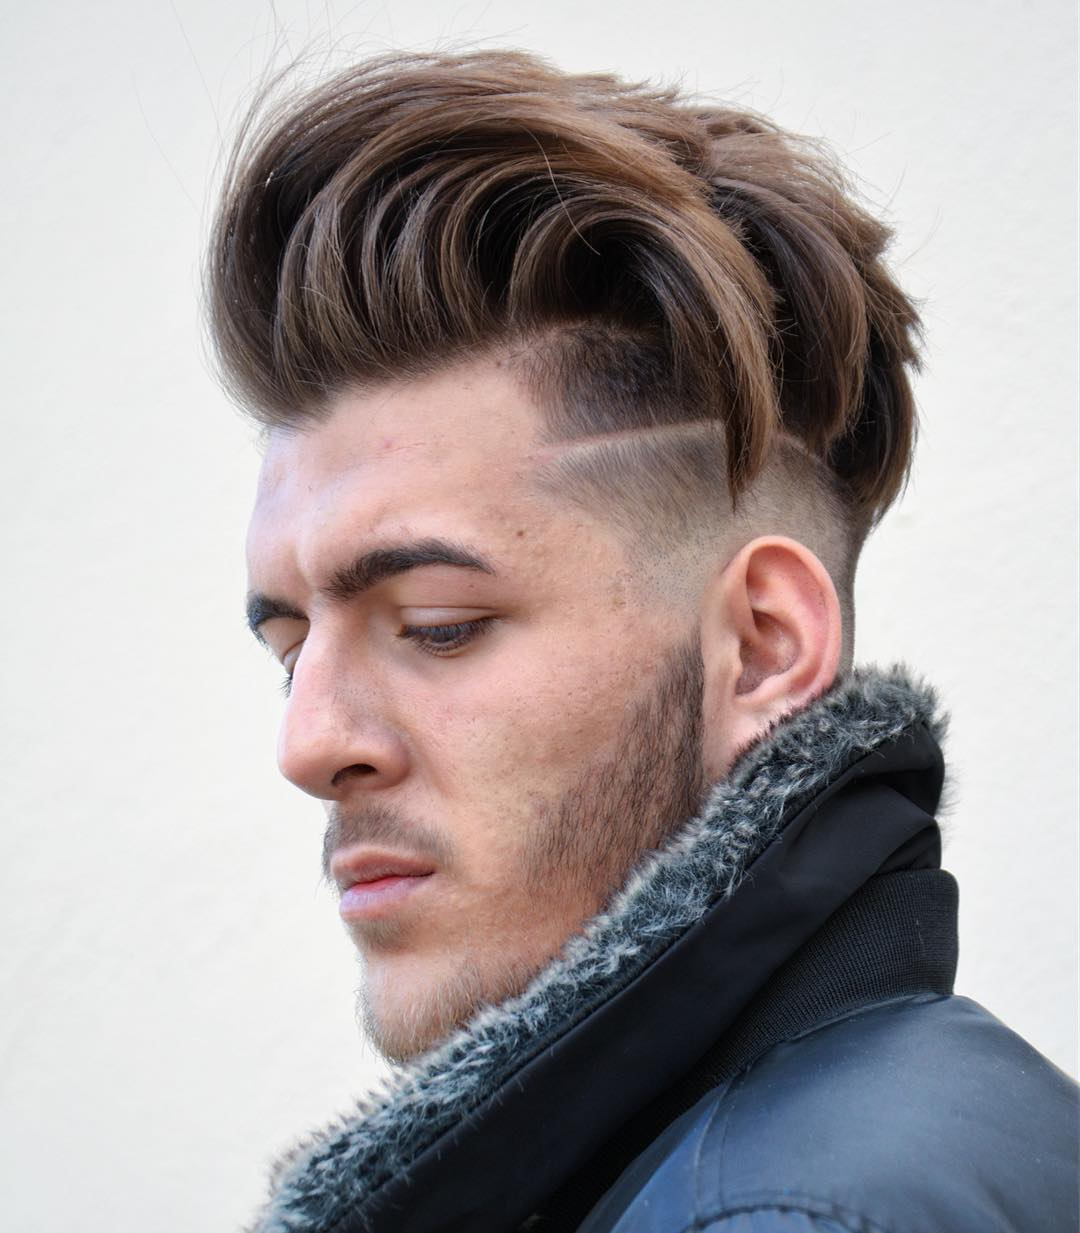 39 Best Mens Hairstyles 2018 - Men\'s Haircuts - Men\'s Hairstyles